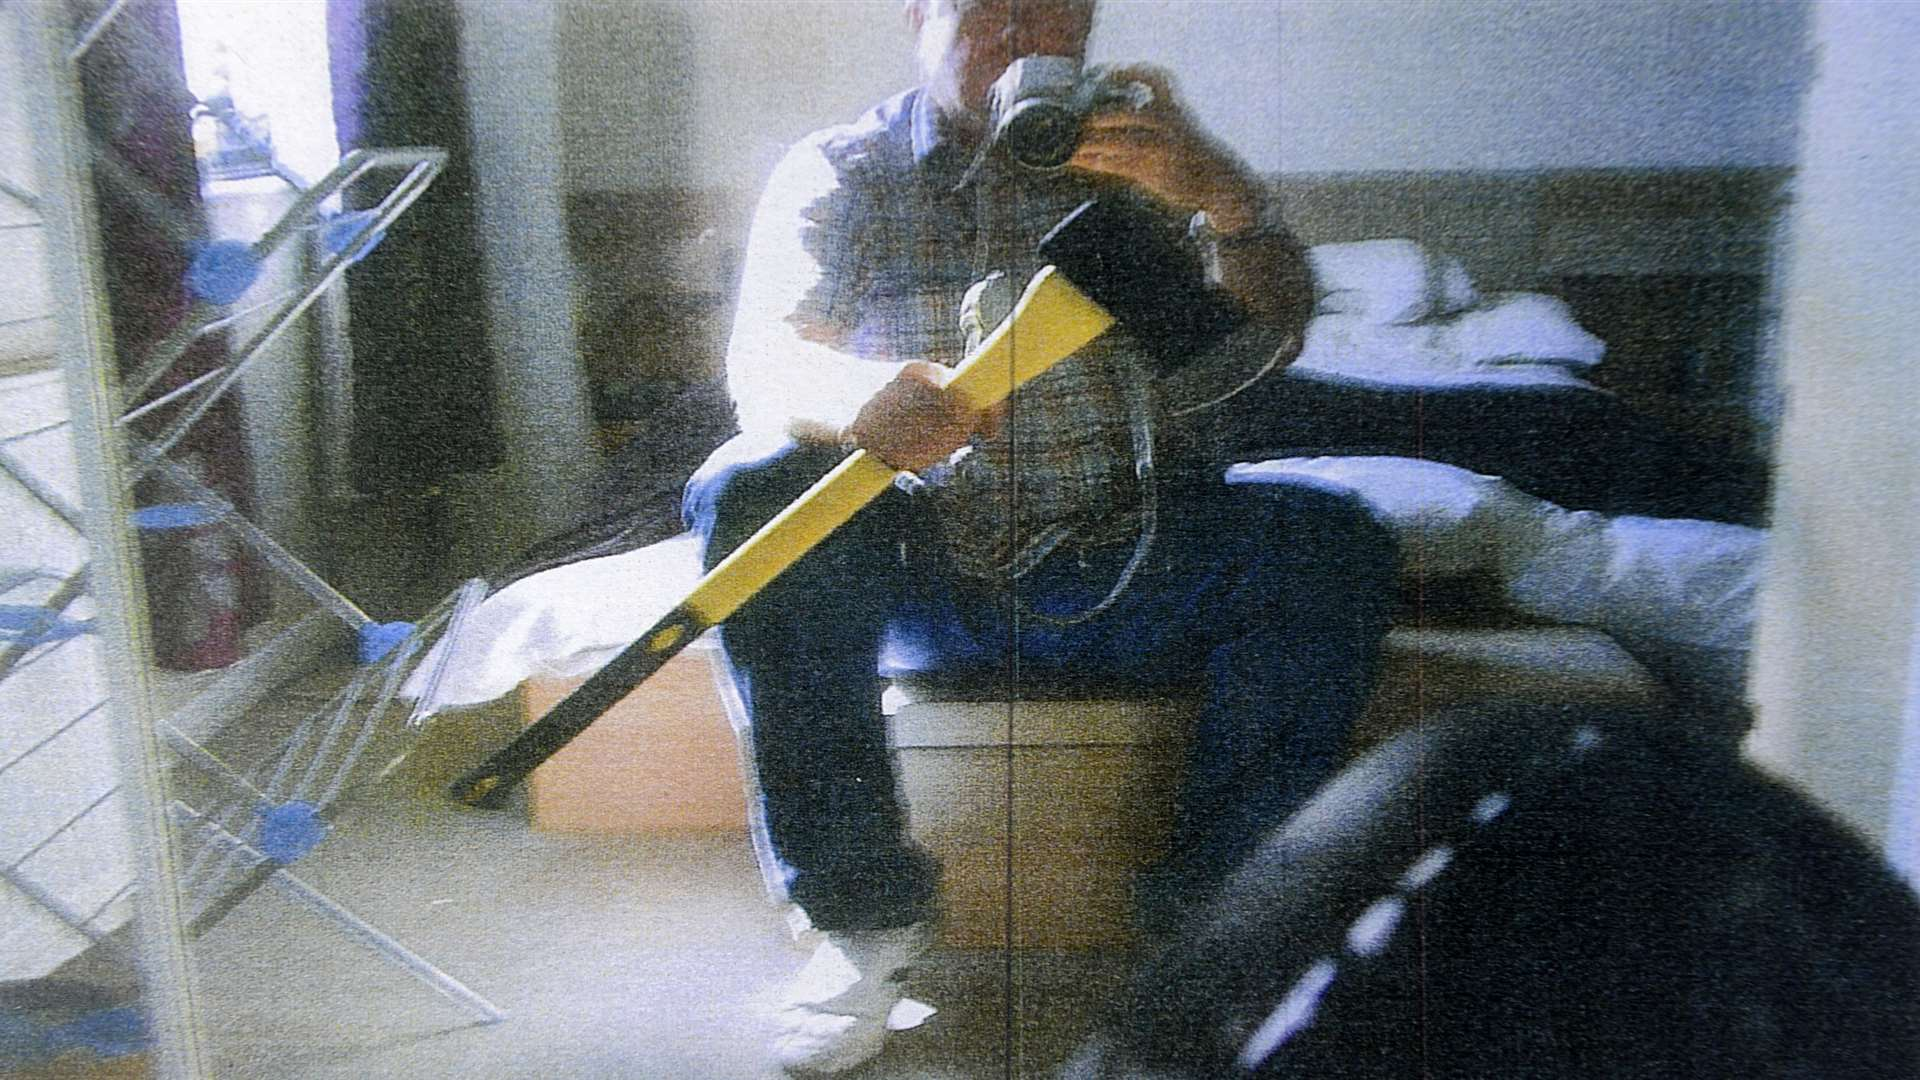 Bolinger poses with an axe - a picture which was shown to the jury during his 2014 trial